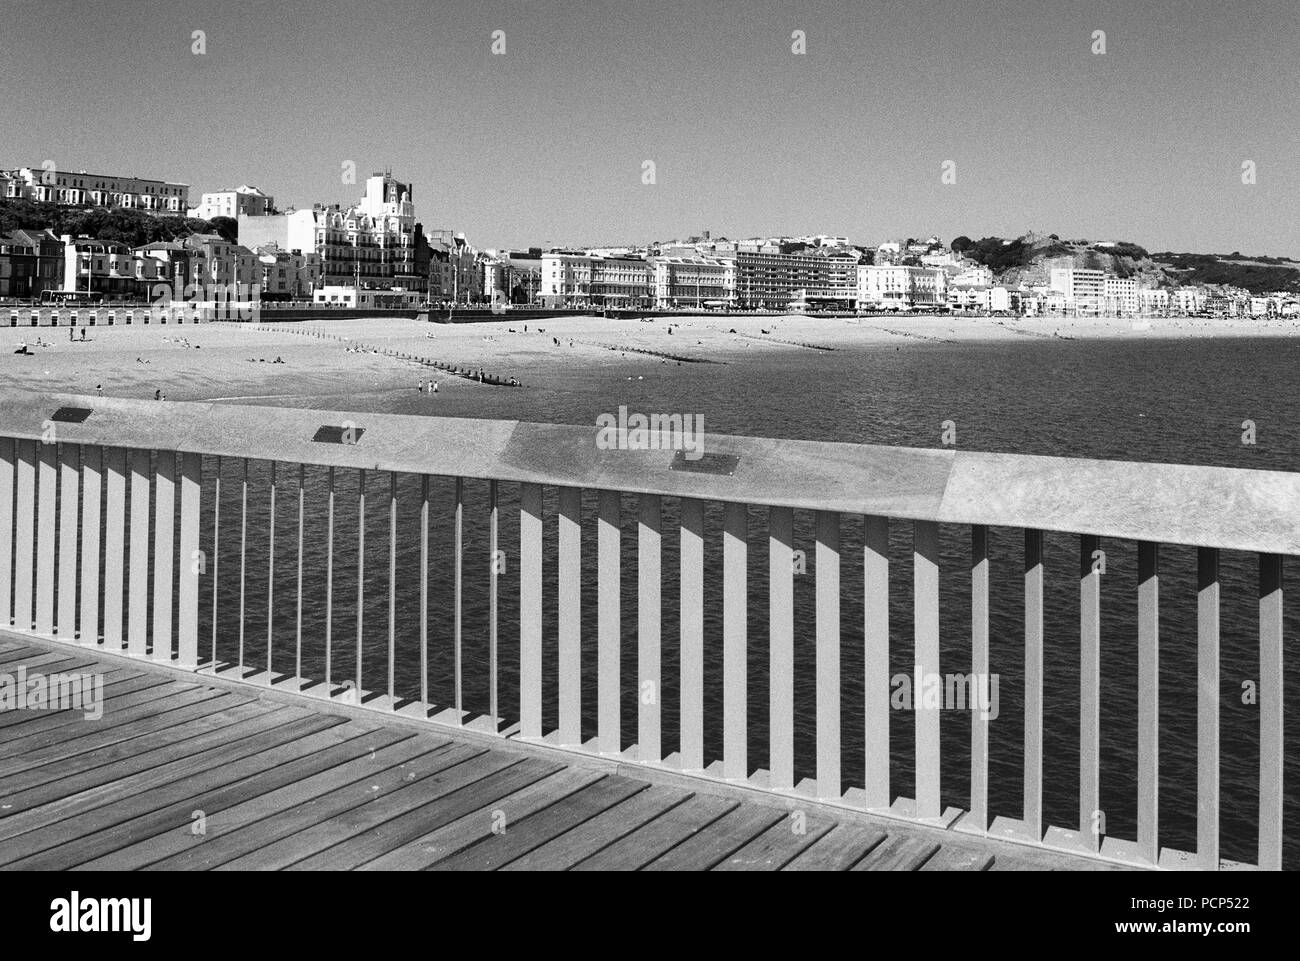 Hastings seafront from Hastings Pier in summer, East Sussex UK, looking East towards the town centre - Stock Image